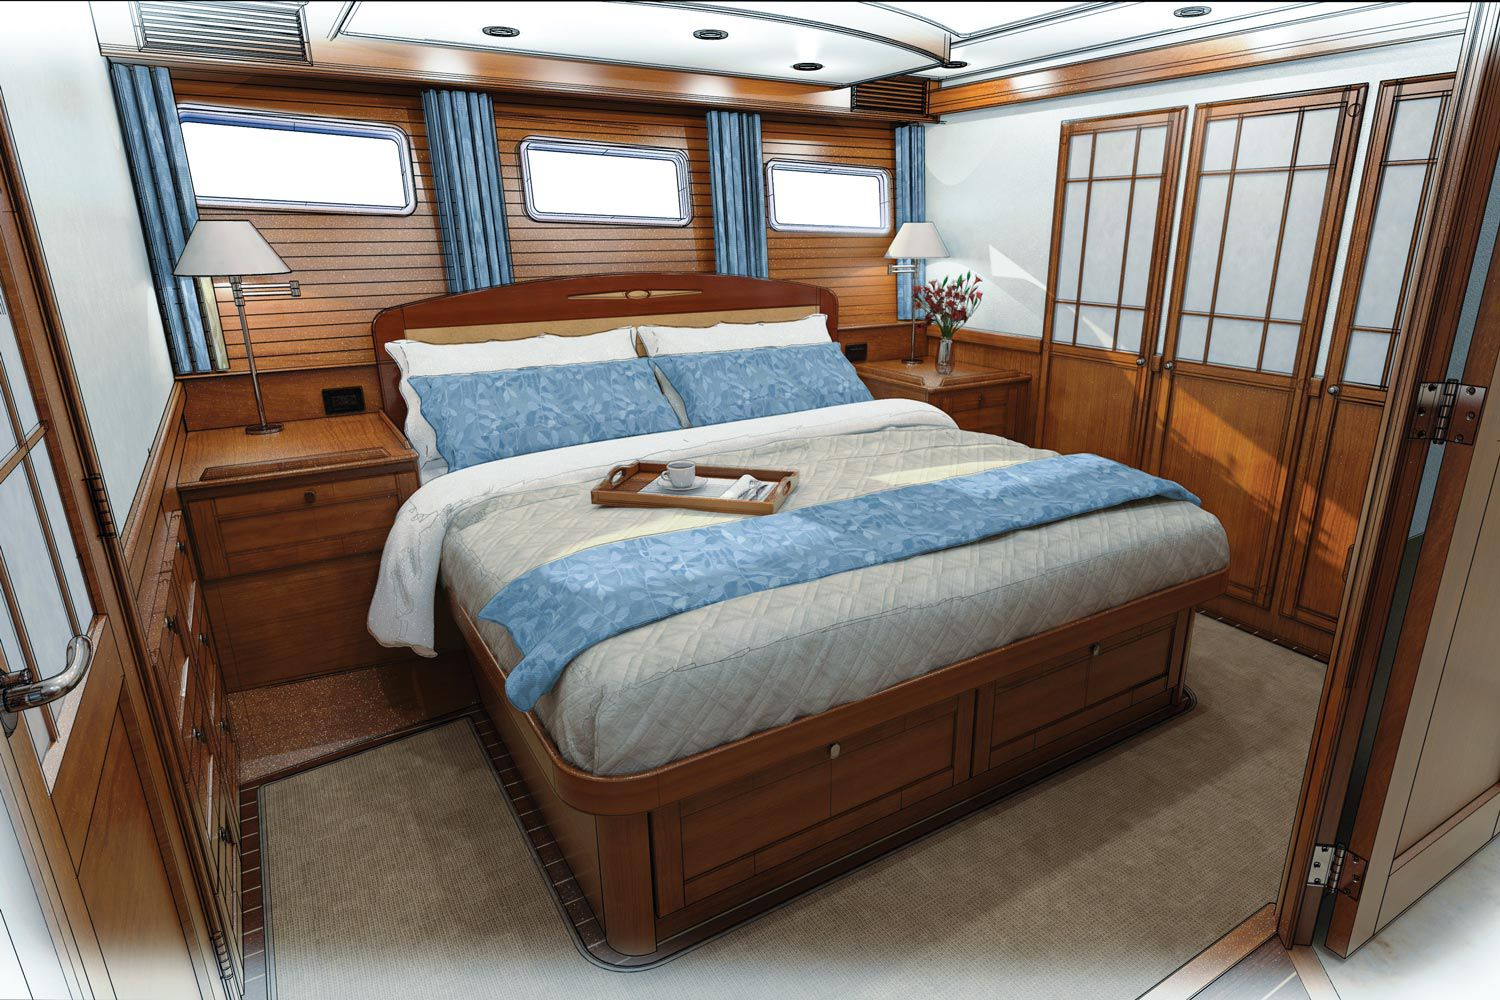 The full-beam master stateroom has a king berth. Its en suite head has designer accents such as stainless-steel towel bars and a wood-trimmed mirror over the sink.